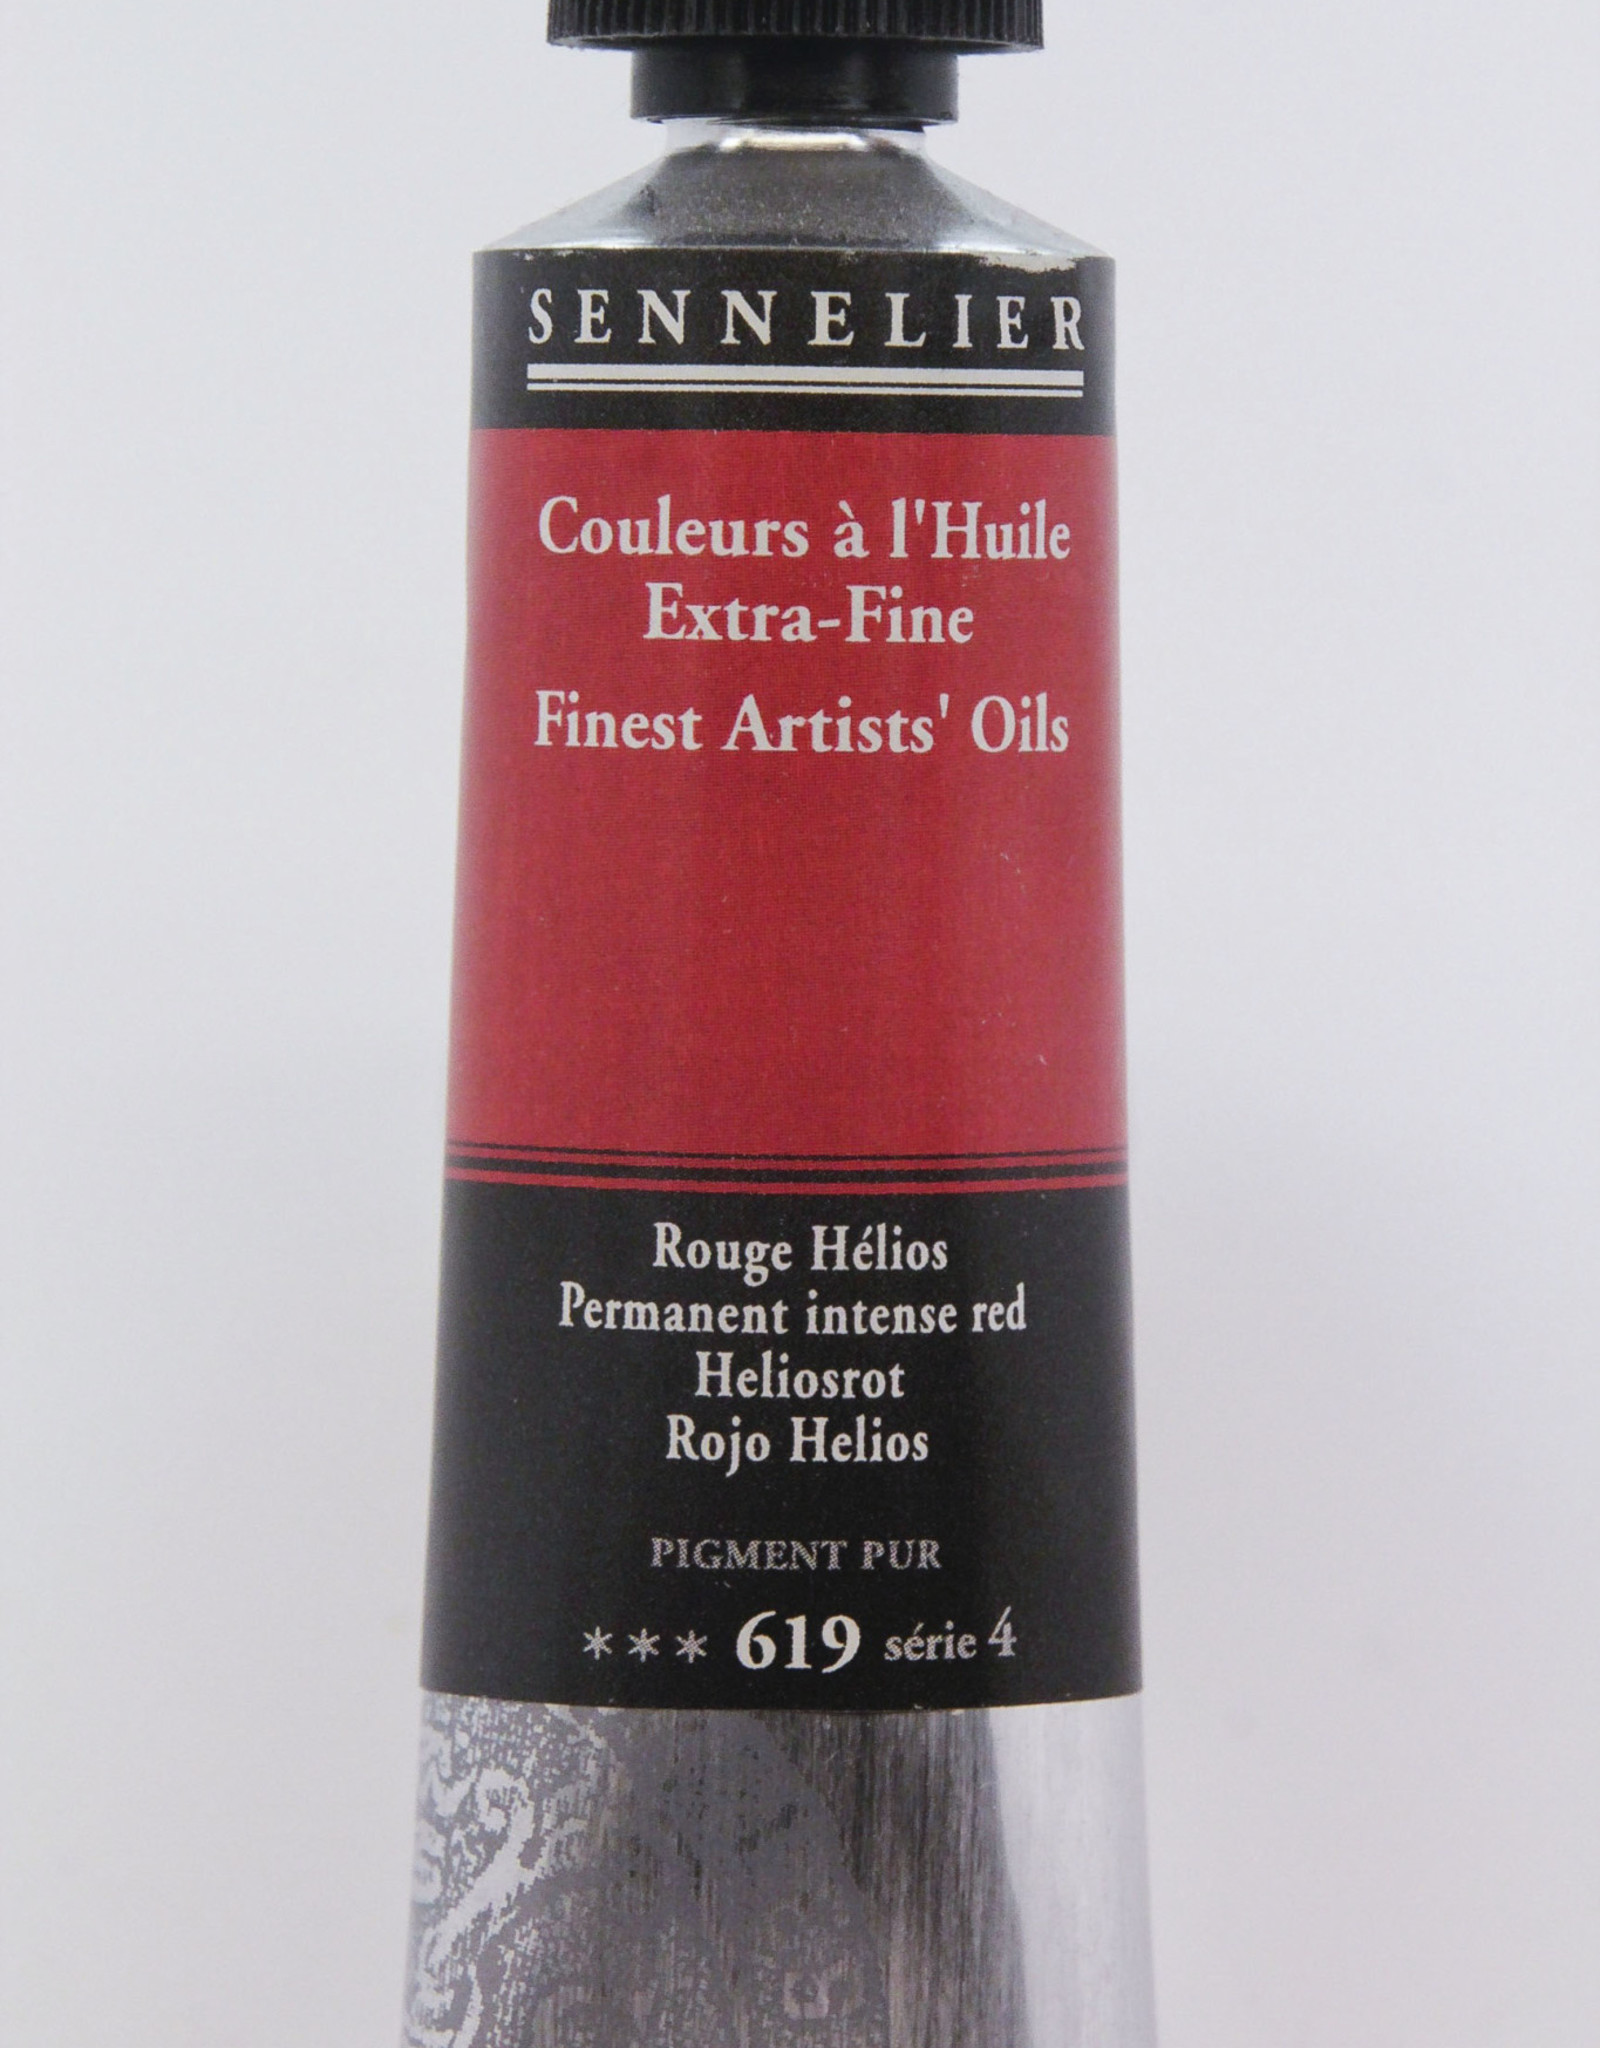 Sennelier, Fine Artists' Oil Paint, Permanent Intense Red, 619, 40ml Tube, Series 4